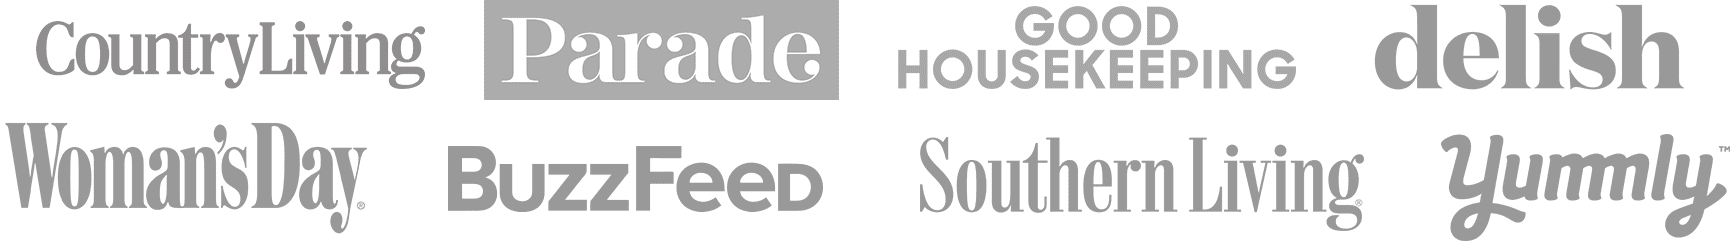 Press logos: Country Living, Parade, Good Housekeeping, Delish, Woman's Day, BuzzFeed, Southern Living, Yummly